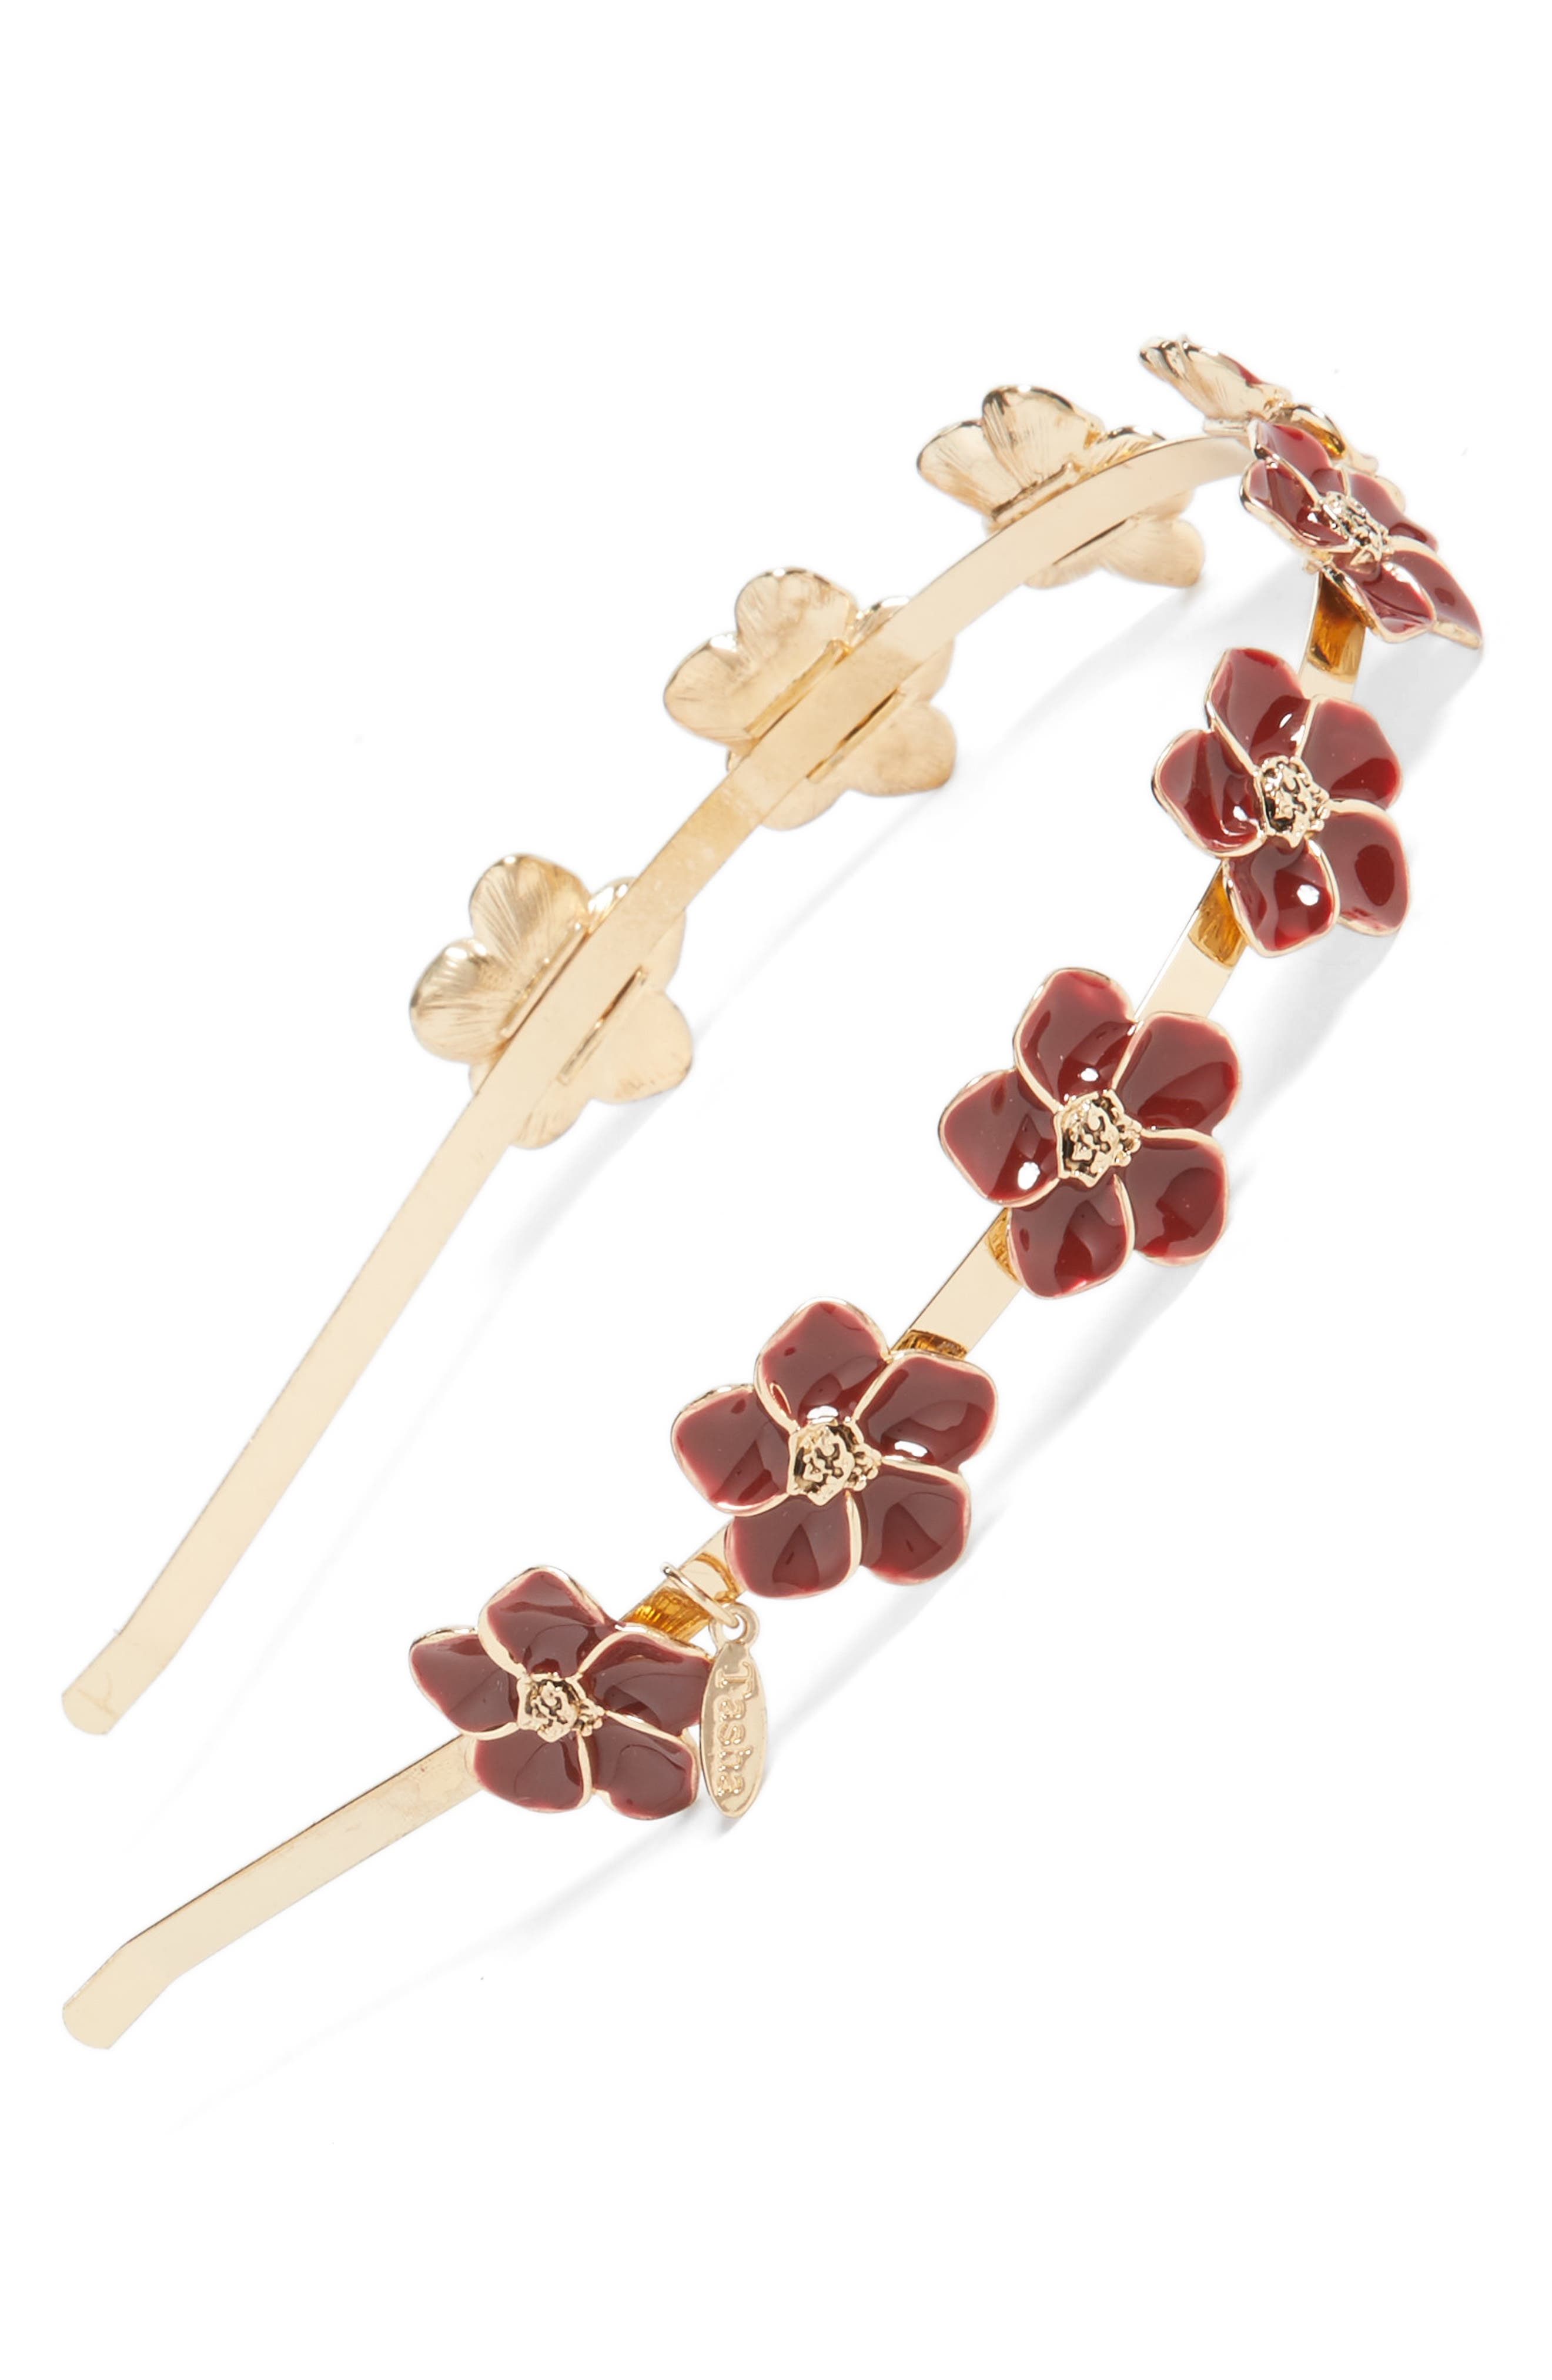 Enamel Floral Headband,                         Main,                         color, Gold/ Red